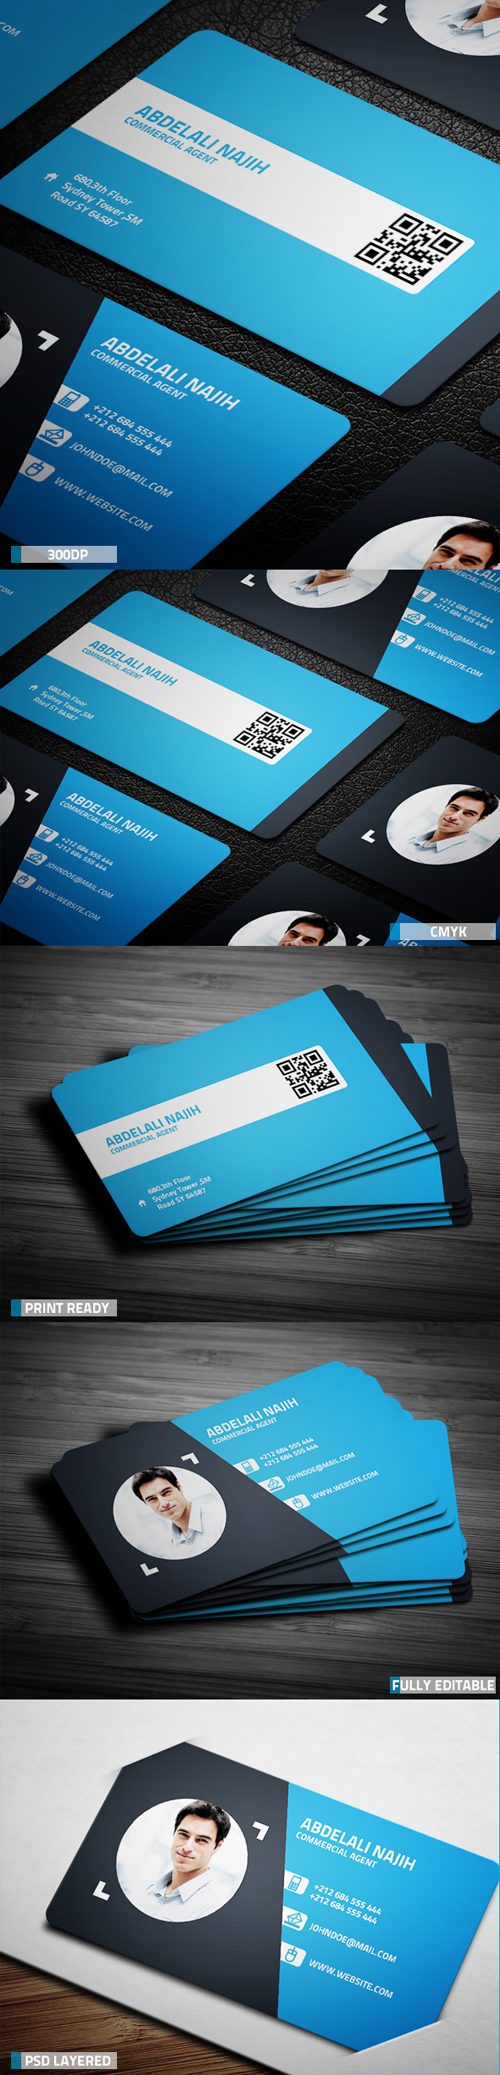 Business Card Templates (PSD) - 17